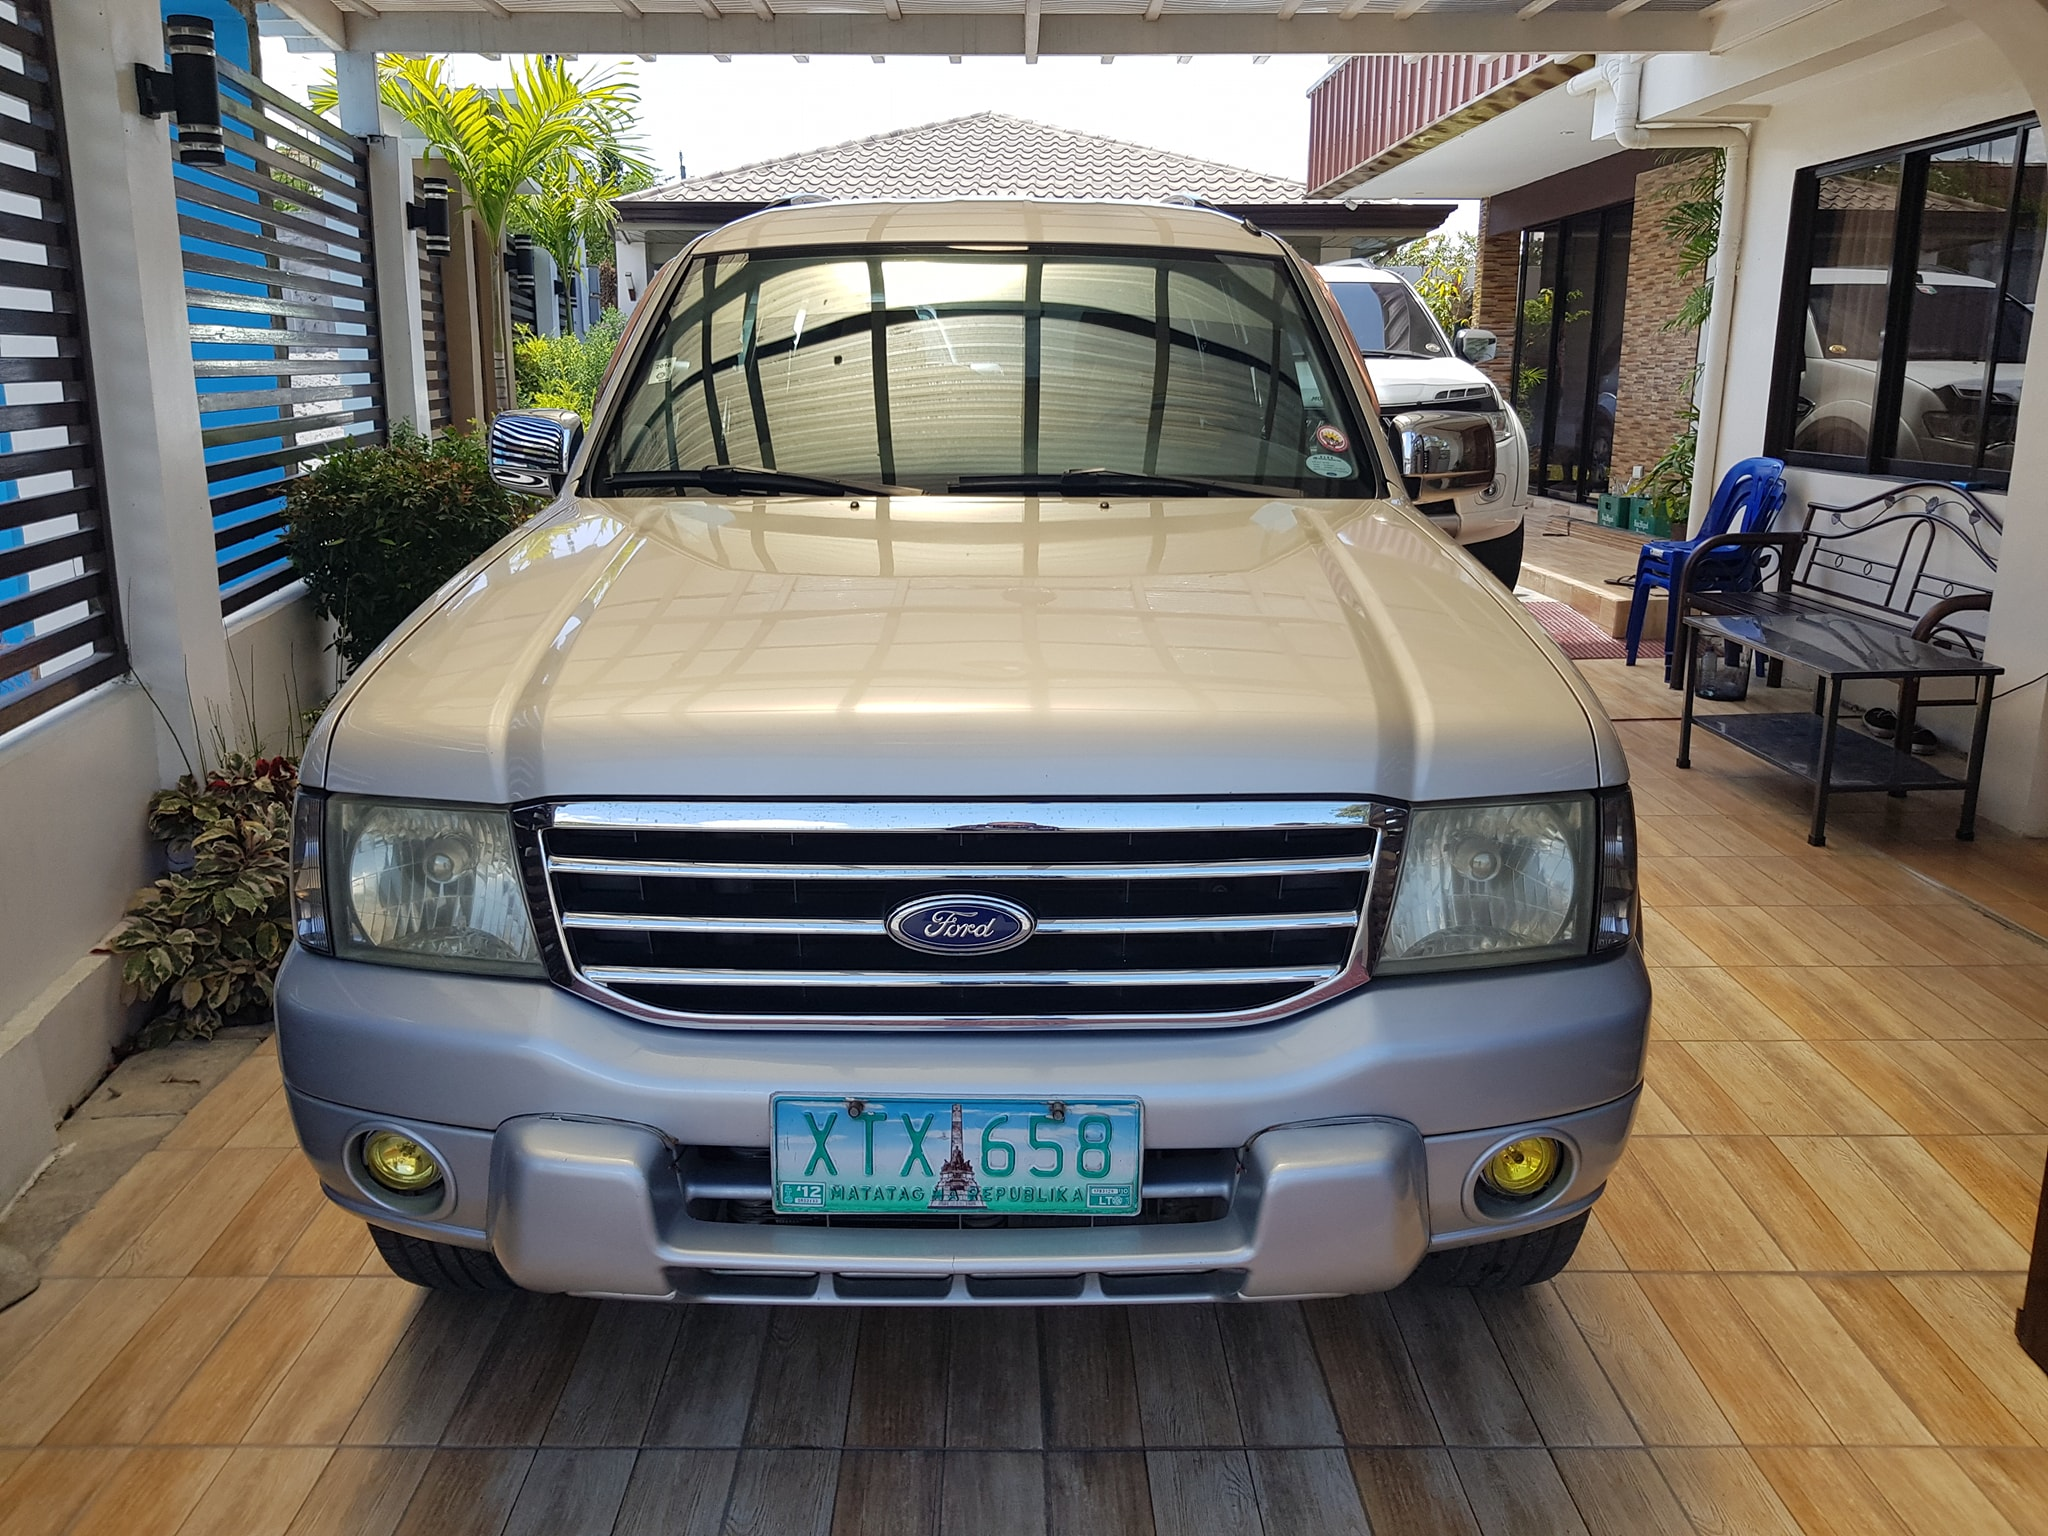 2005 Ford Everest XLT 4x4 photo